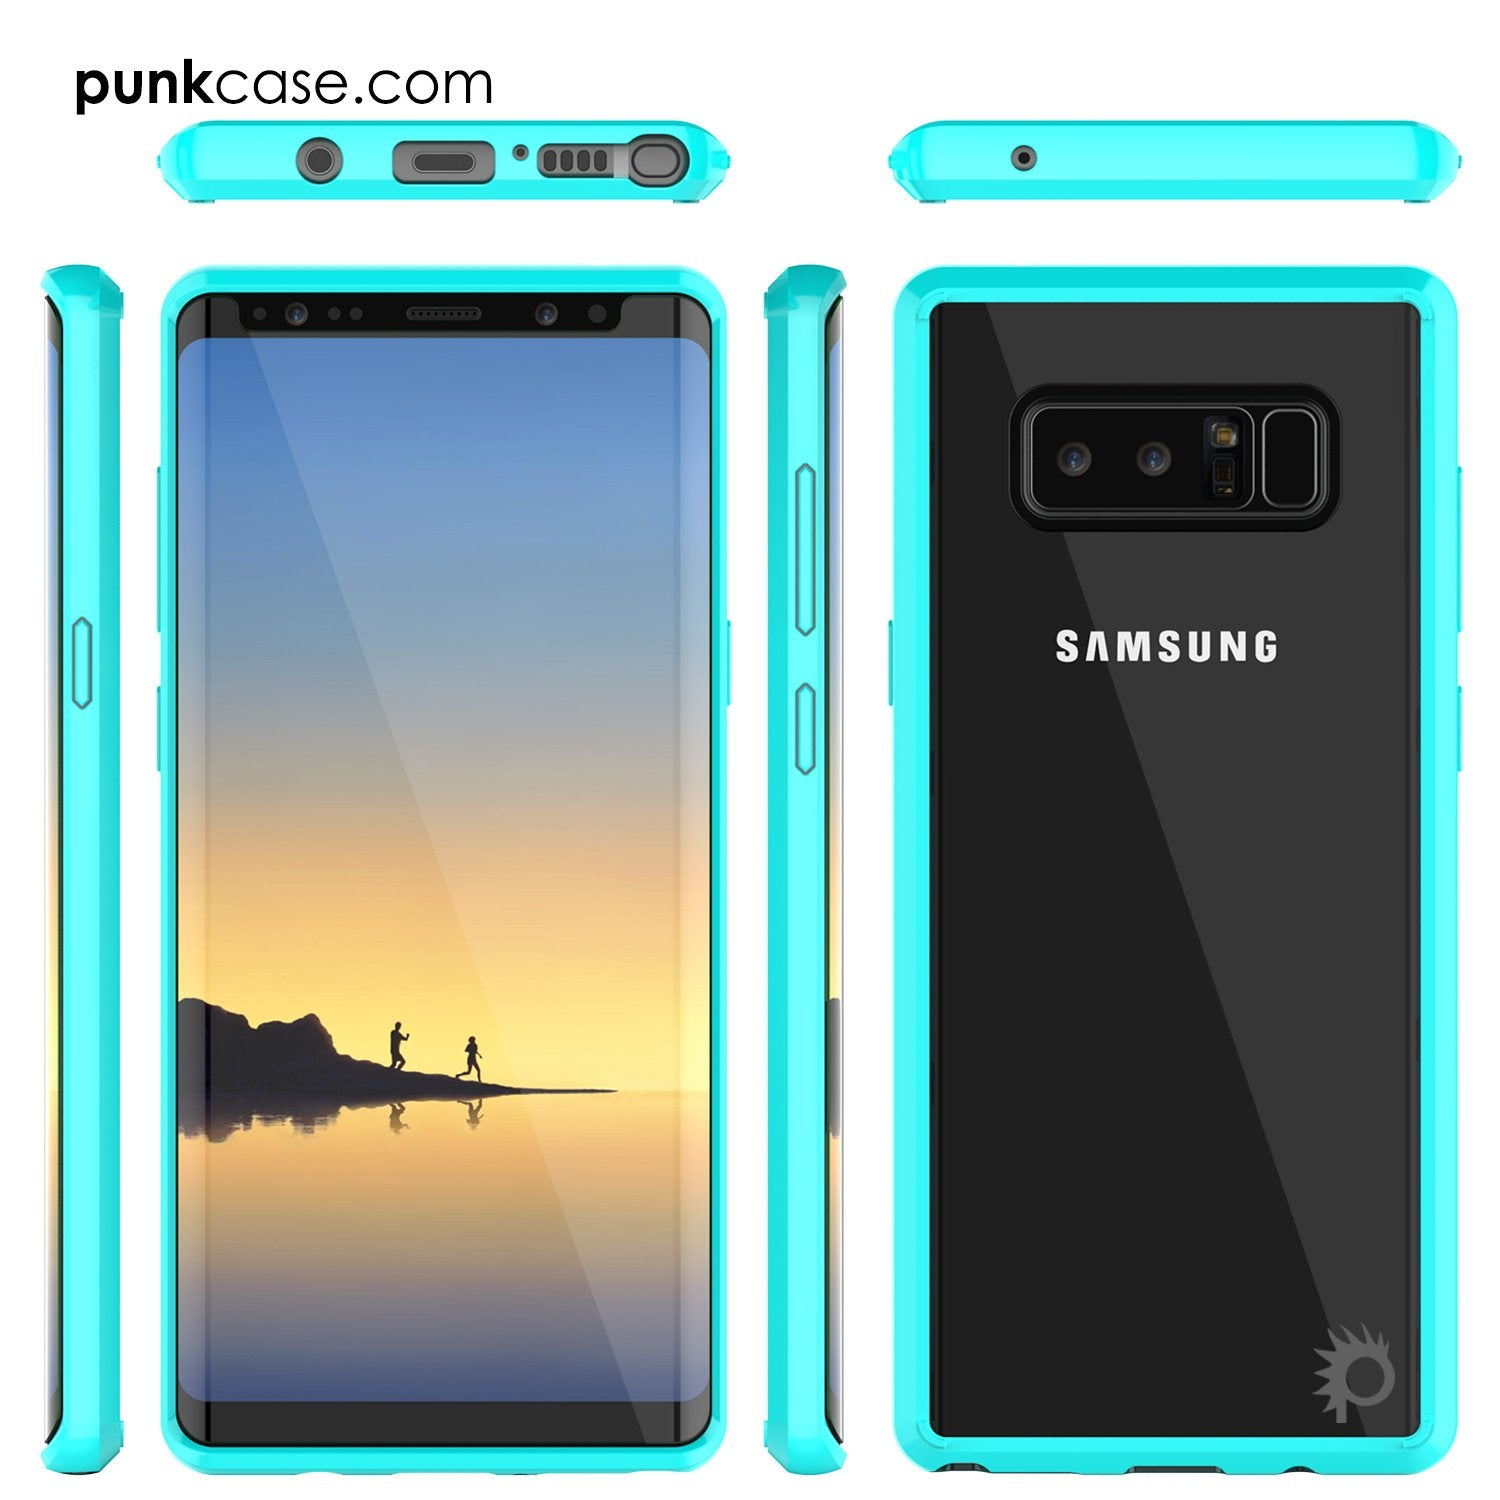 Galaxy Note 8 Punkcase, LUCID 2.0 Series Armor Cover Anti-Shock [Teal]